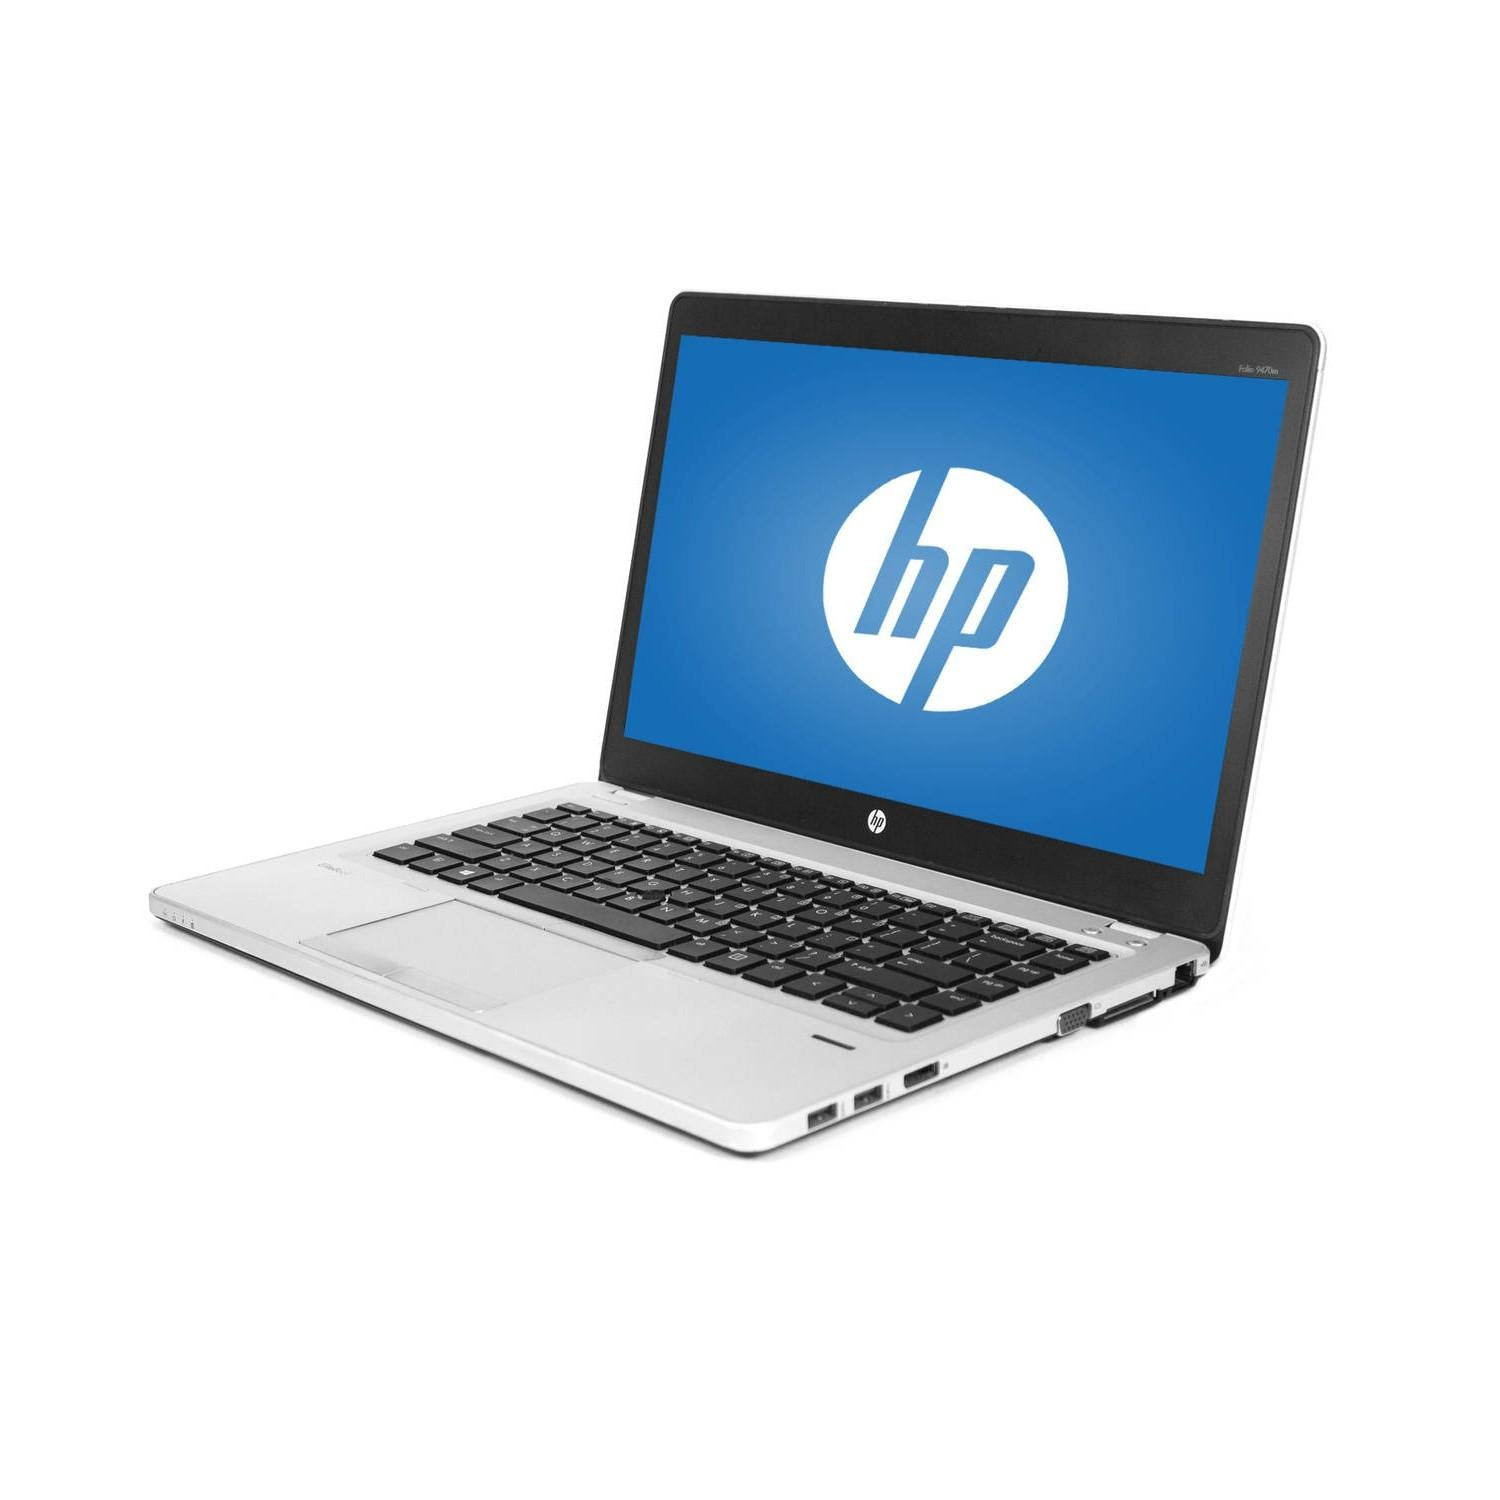 "HP Elitebook Folio 9480M  Certified Refurbished 14"" Laptop Core i5 2.0GHz 5 Year Warranty Windows 10"